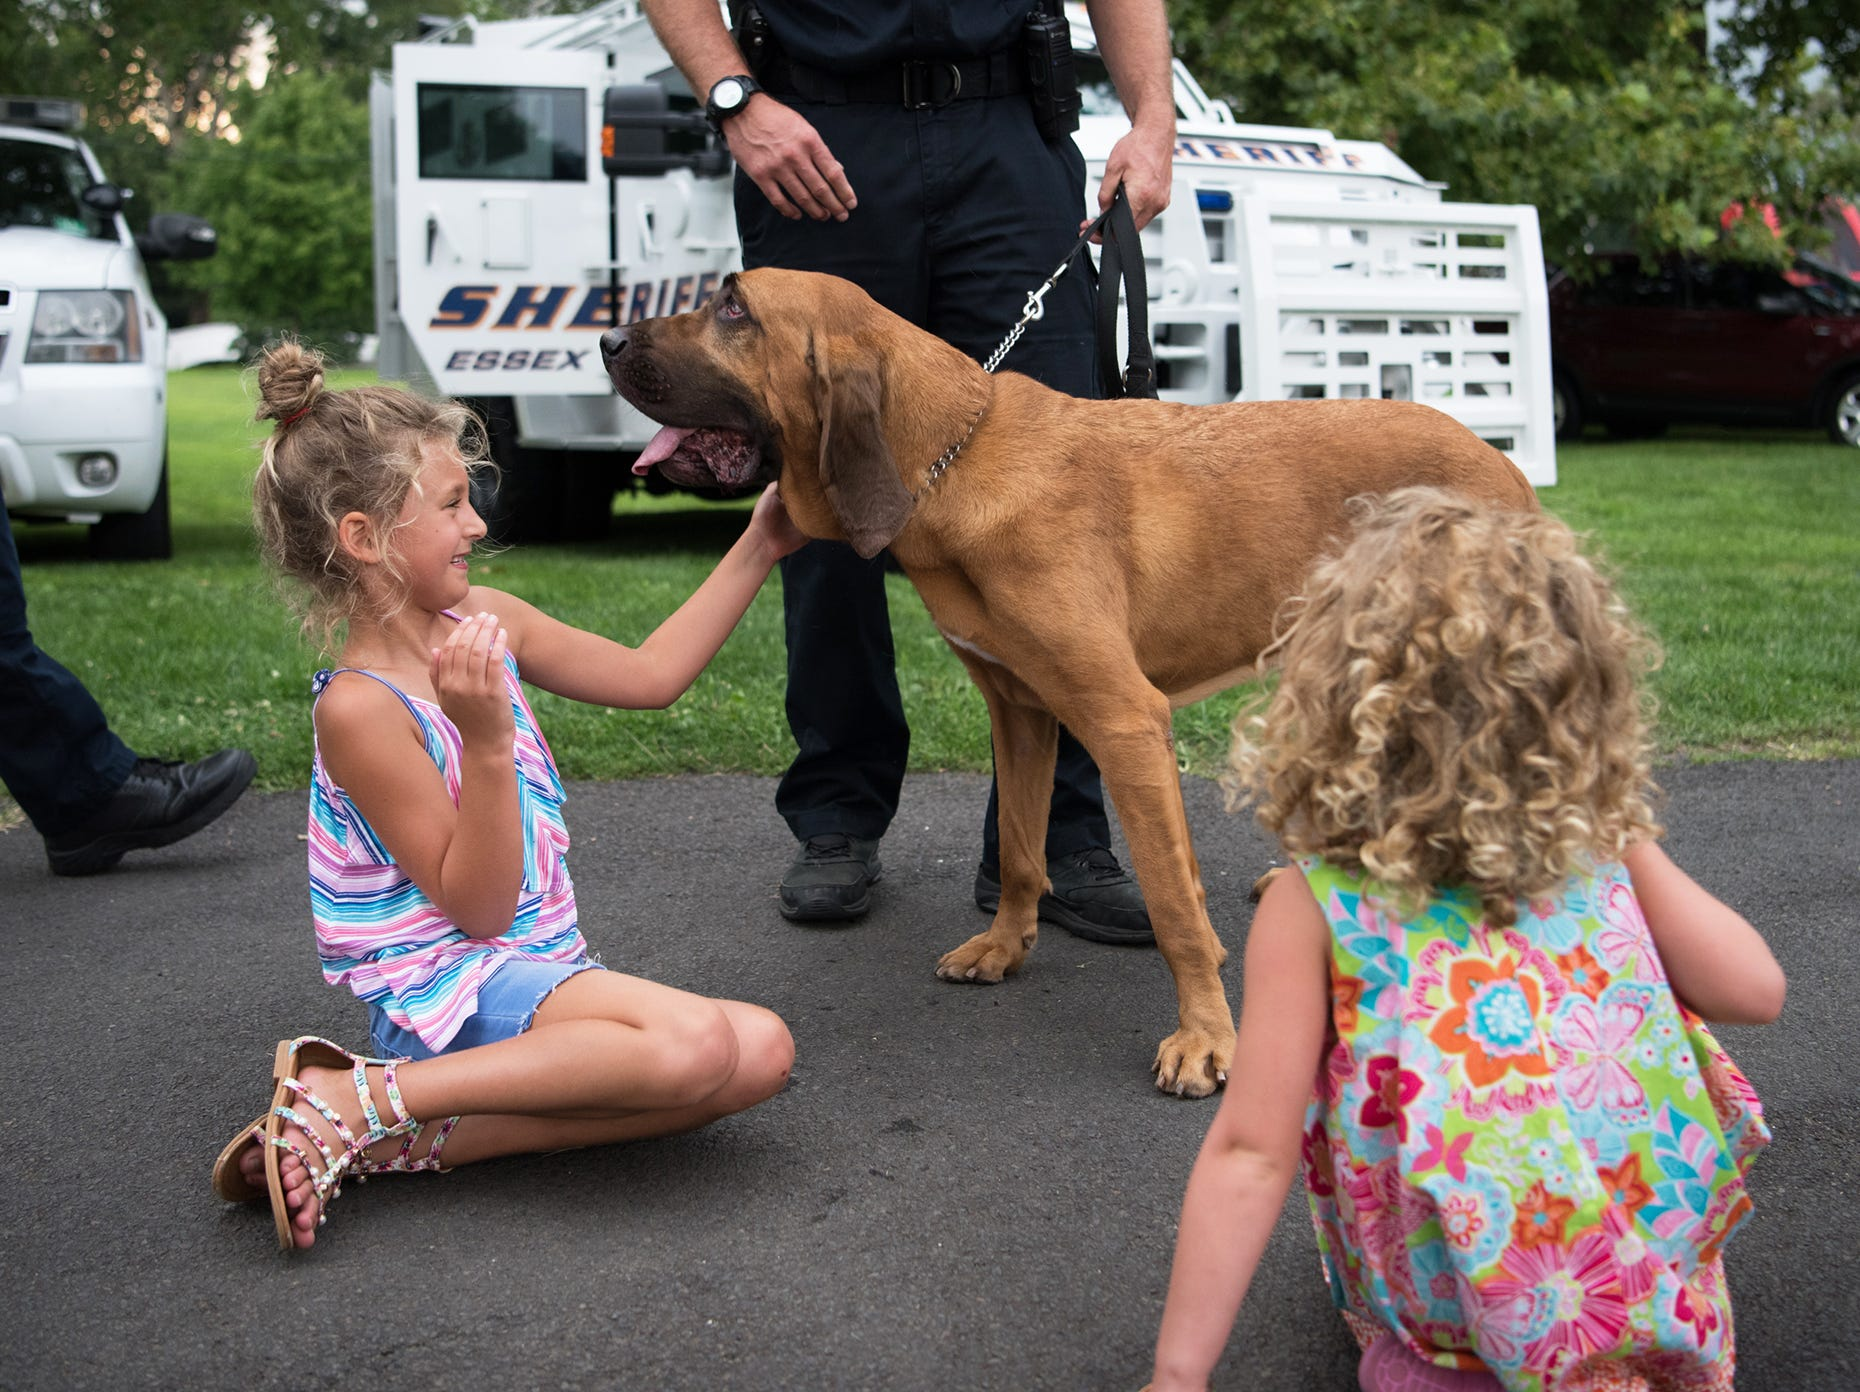 A bloodhound dog named Joe is handled by Detective Tesei and is being pet by Carolina and Laurel Brown at the National Night Out in Millburn, NJ. Tuesday, August 7, 2018.